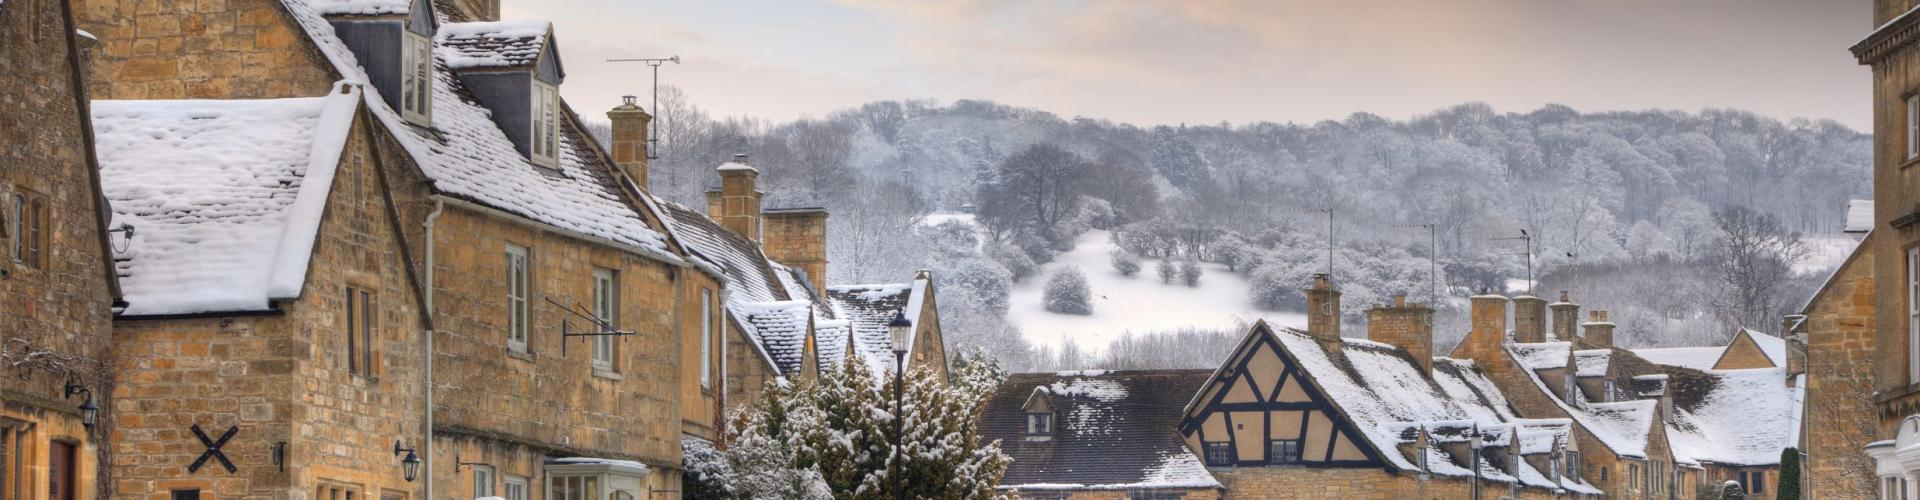 Cotswold village of Broadway in snow Worcestershire England small